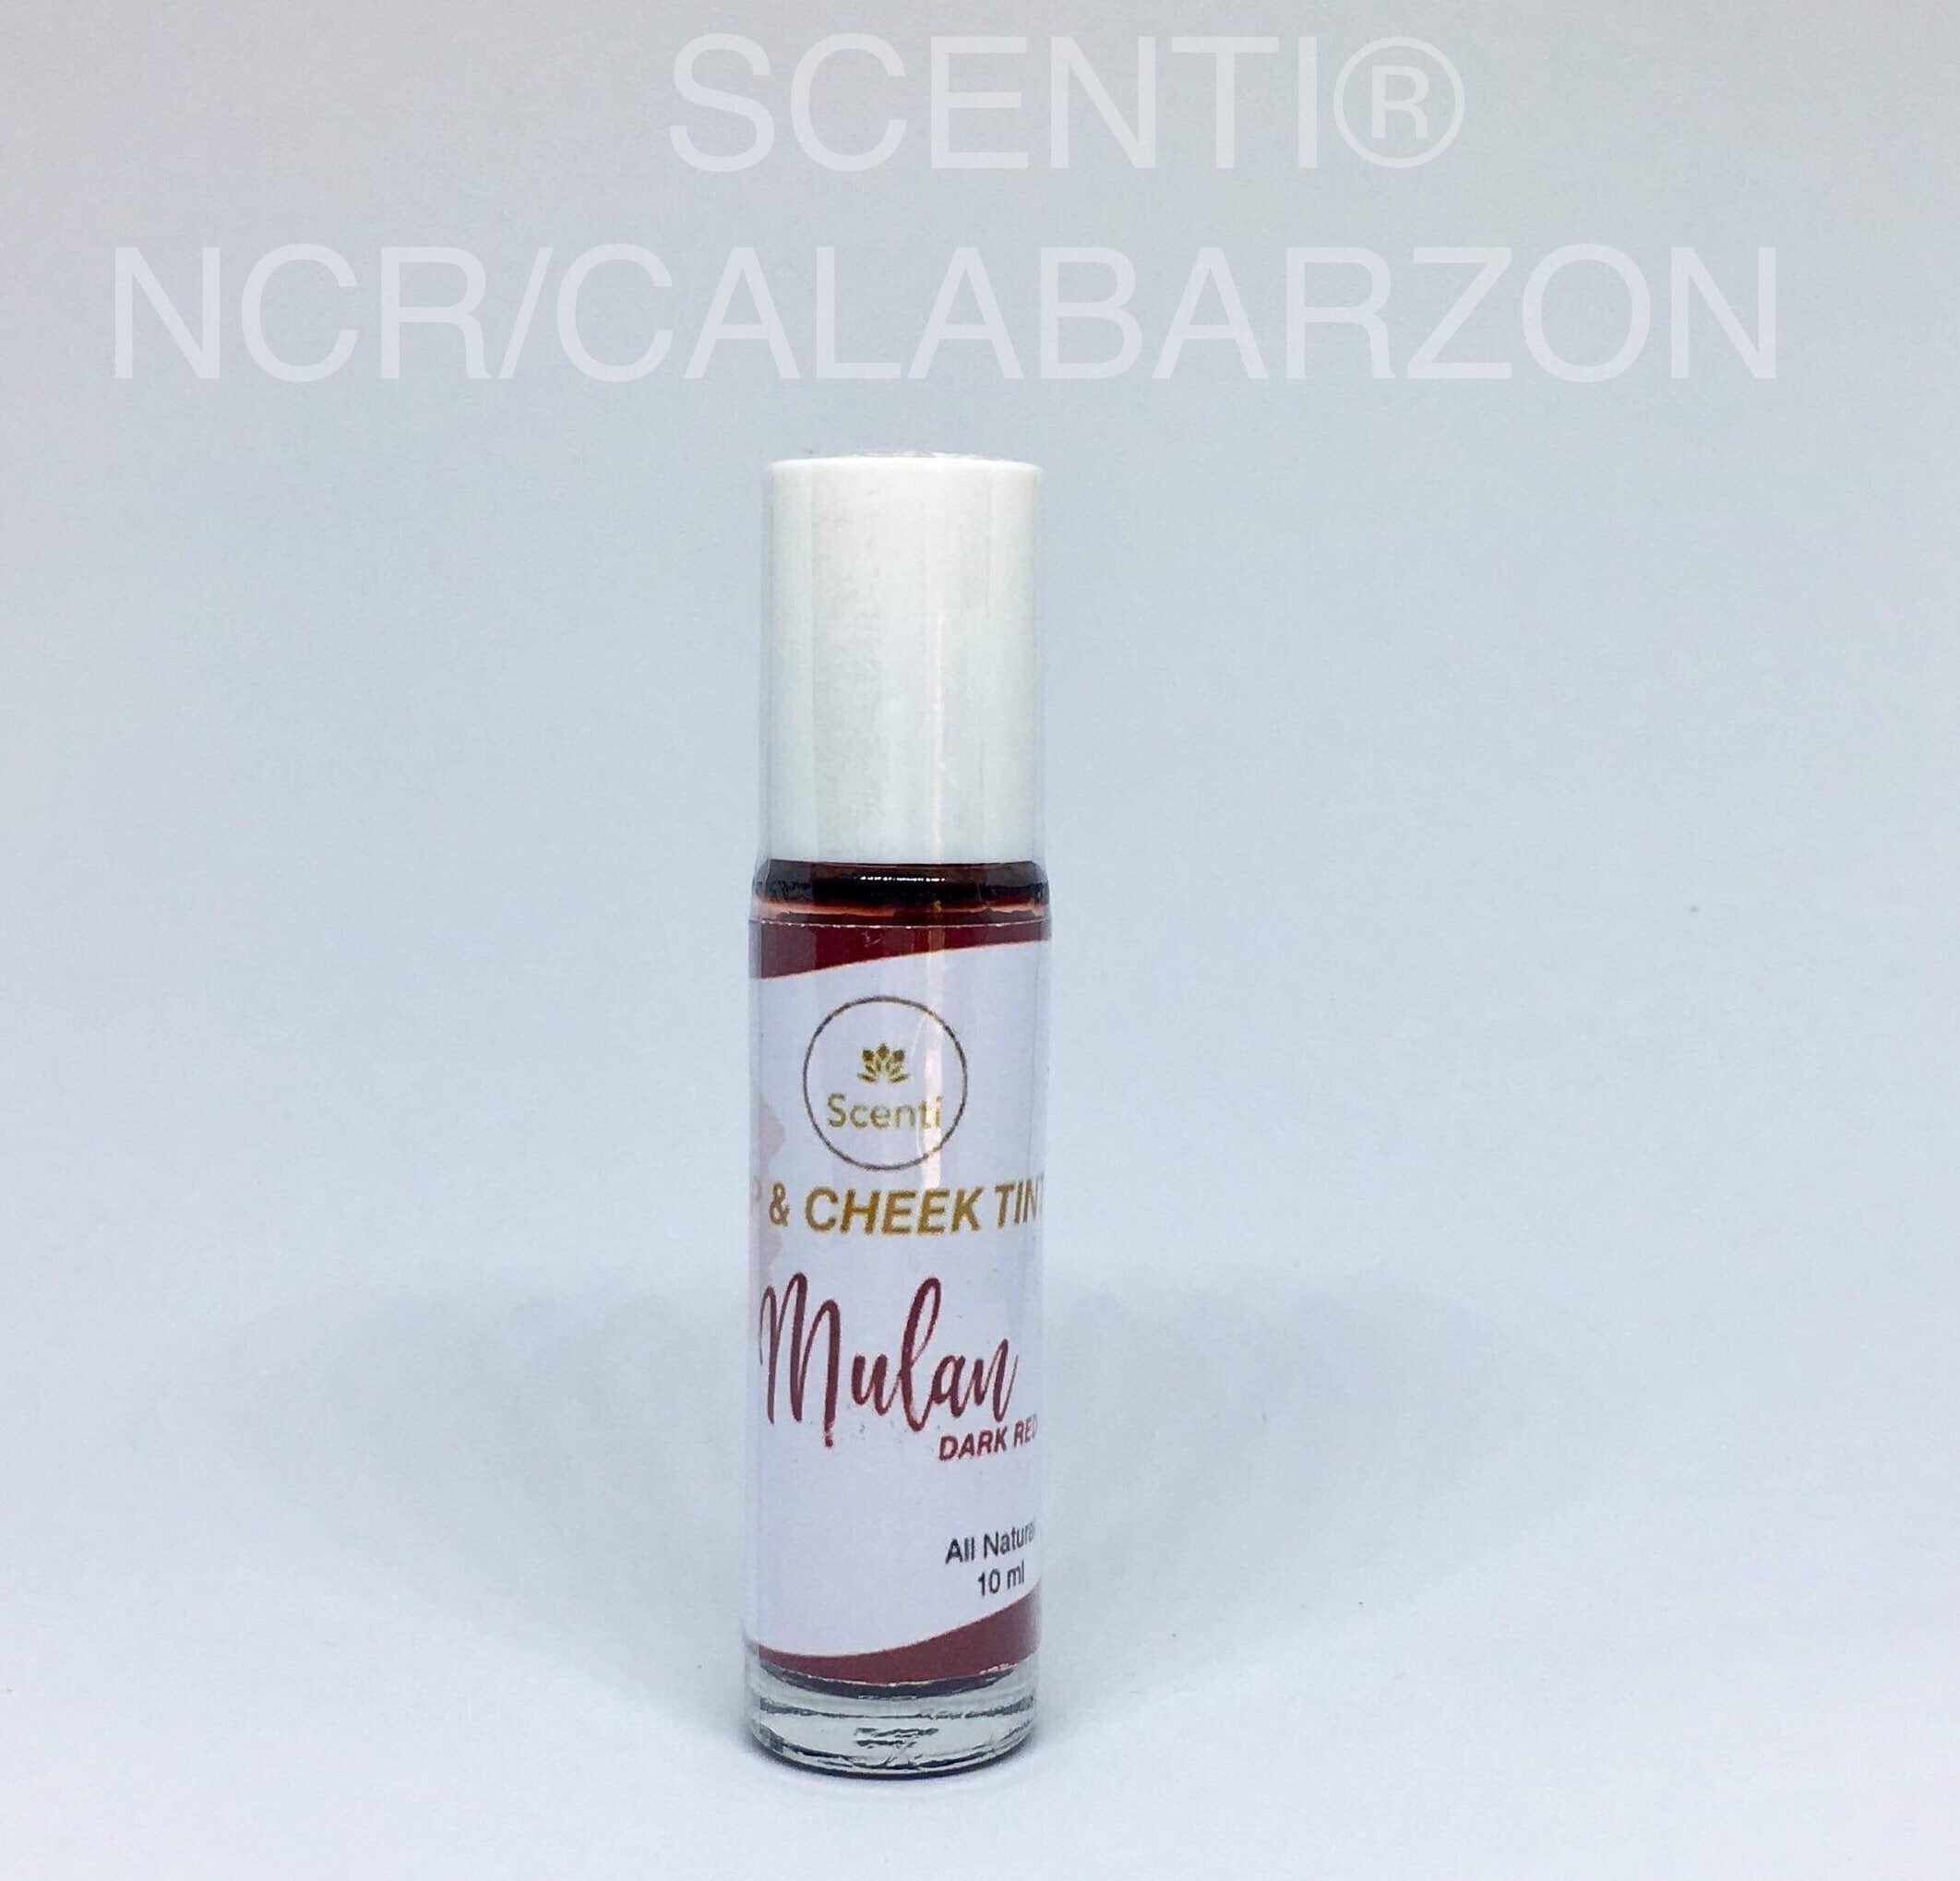 Lip and Cheek Tint 10ml (SCENTI NCR)